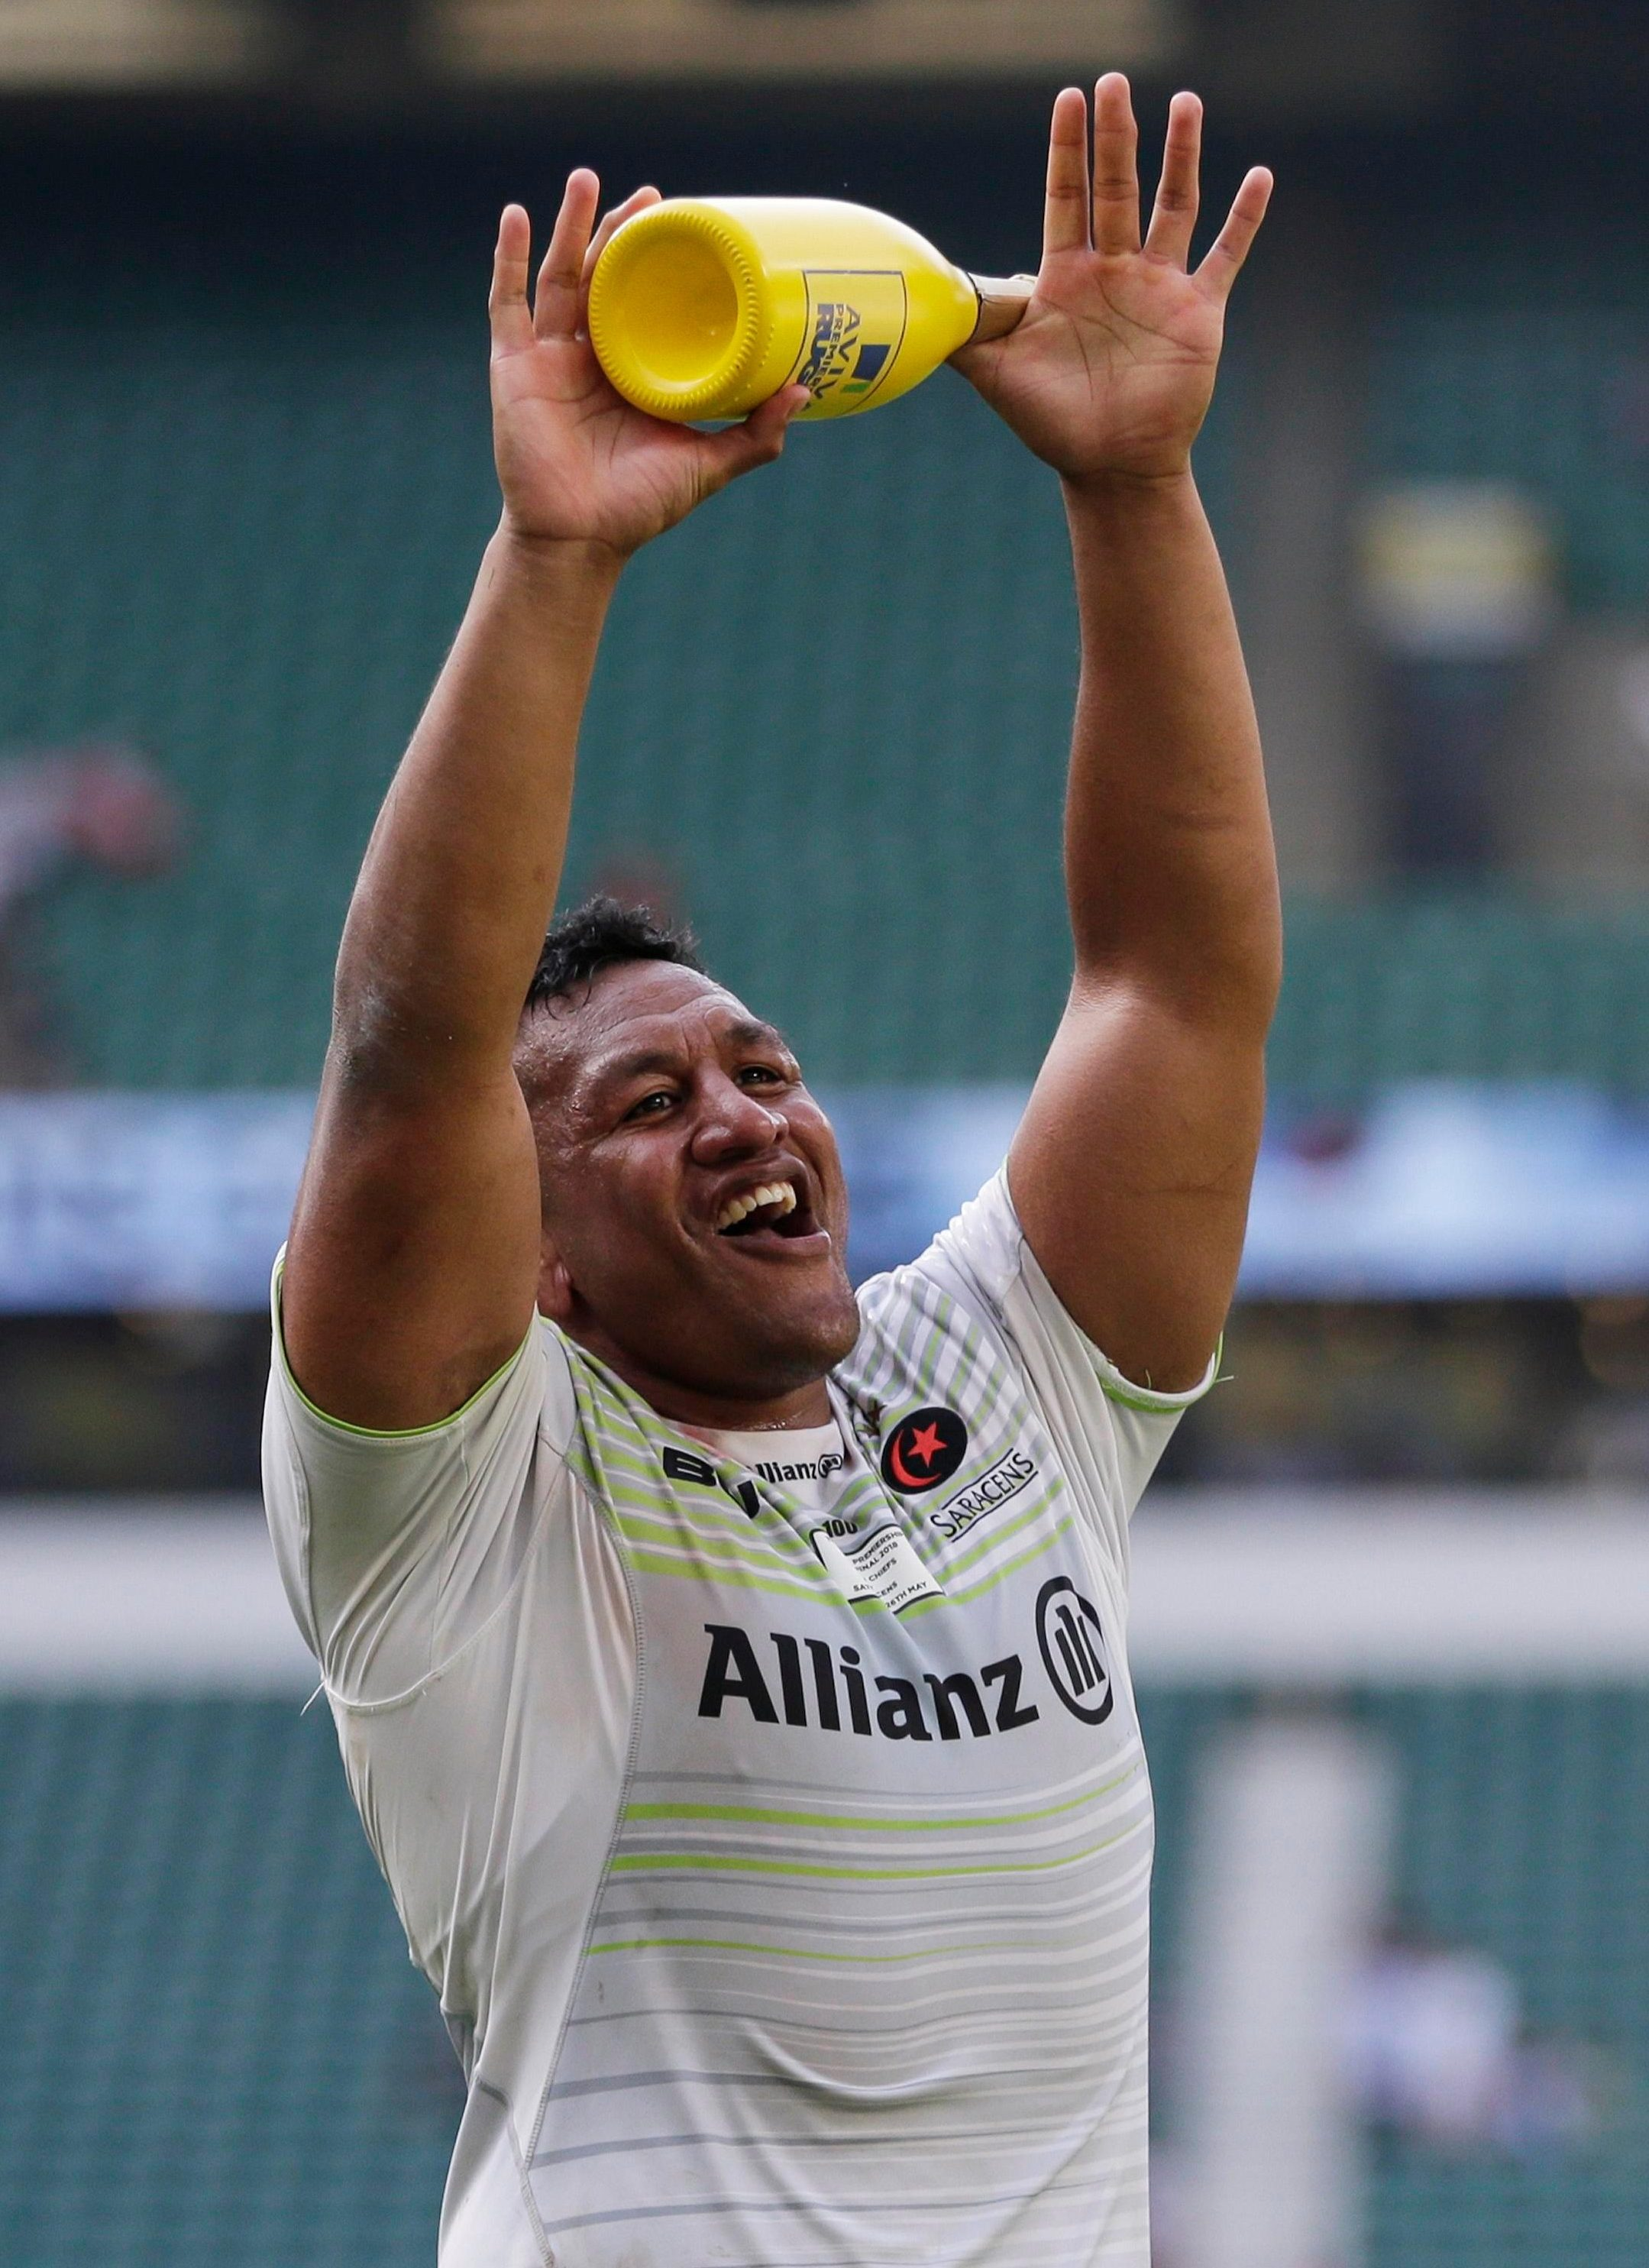 Mako Vunipola celebrates being crowned Man of the Match